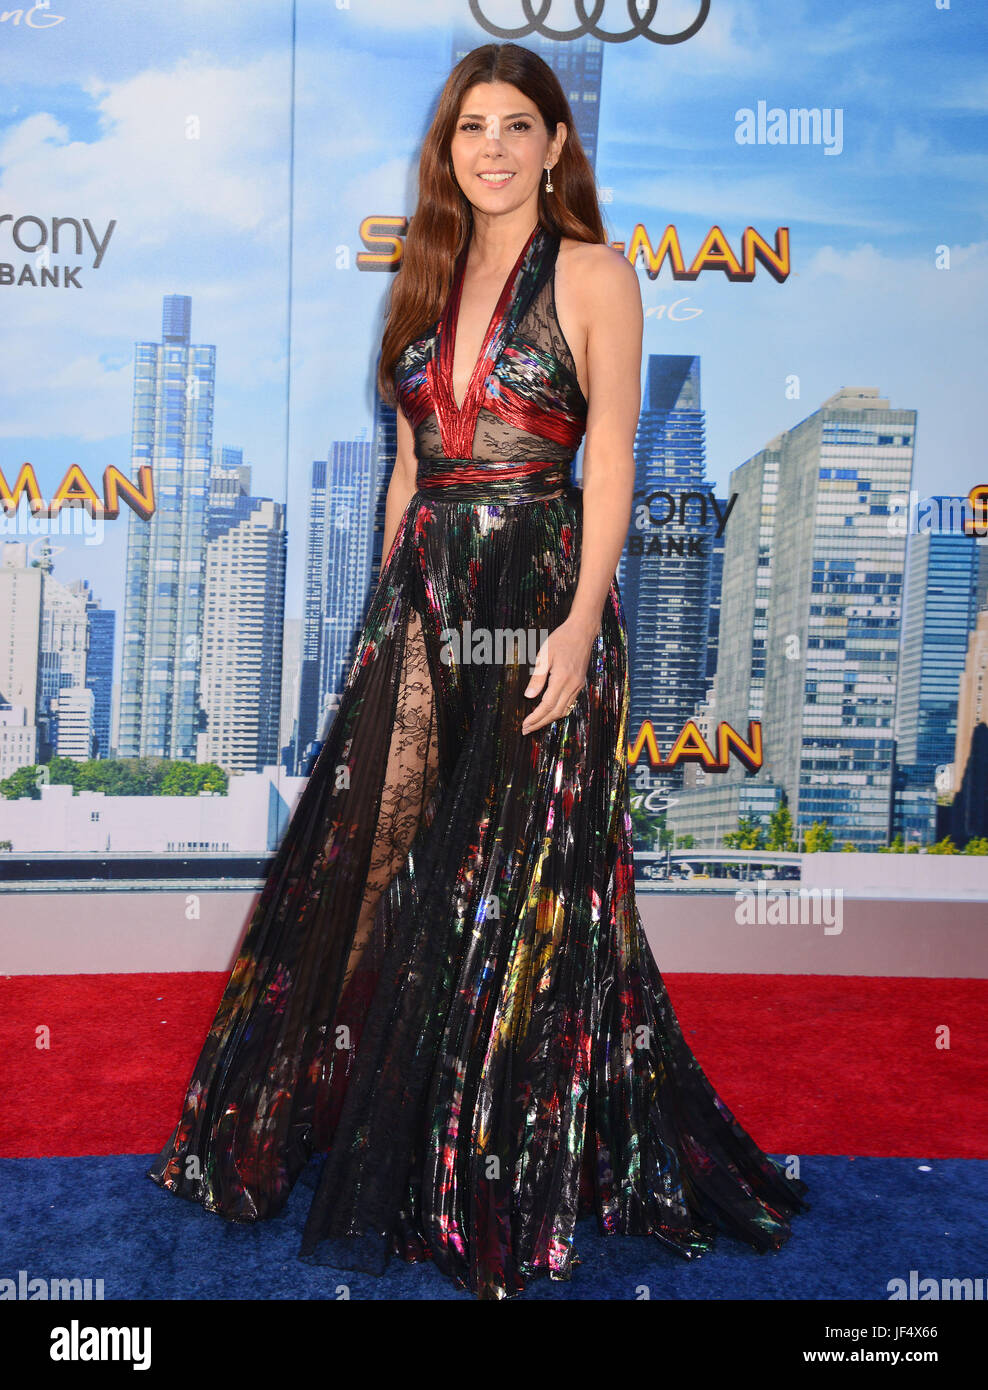 Hollywood, California, USA. 28th June, 2017. Marisa Tomei 019 arrives at the Premiere Of Columbia Pictures' - Stock Image